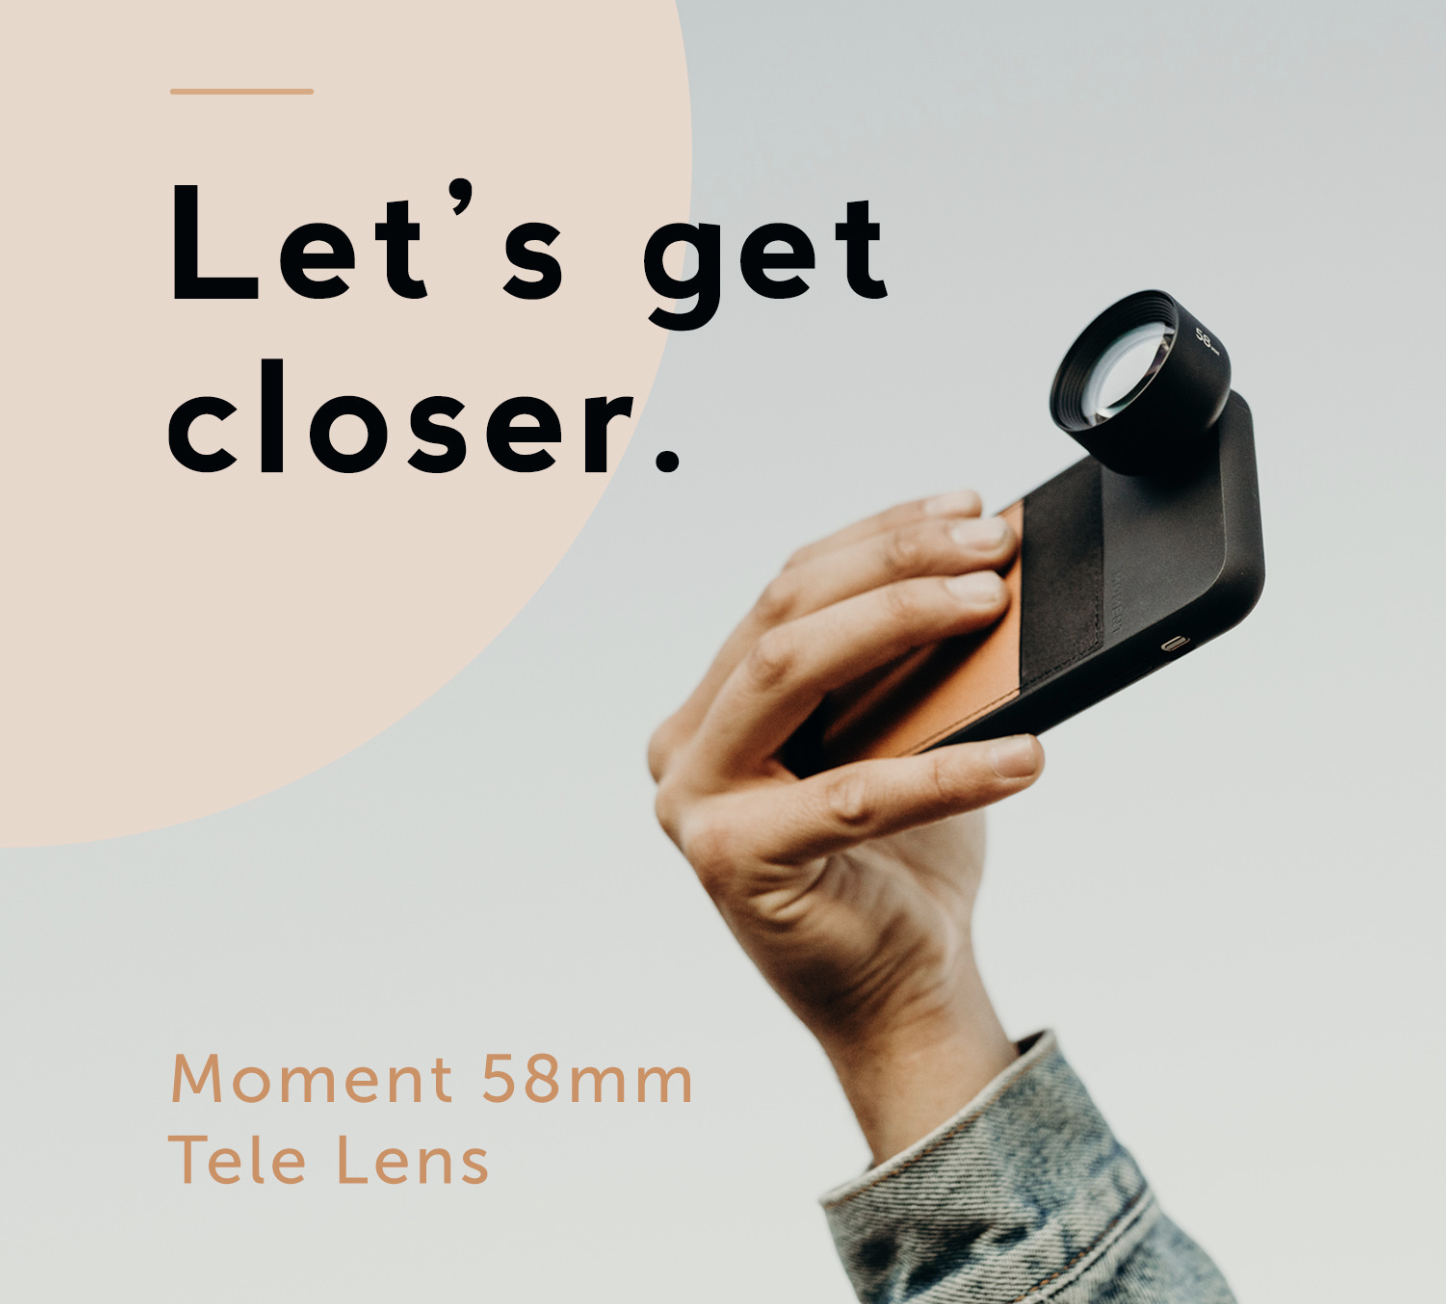 moment 58mm tele lens for mobile photography